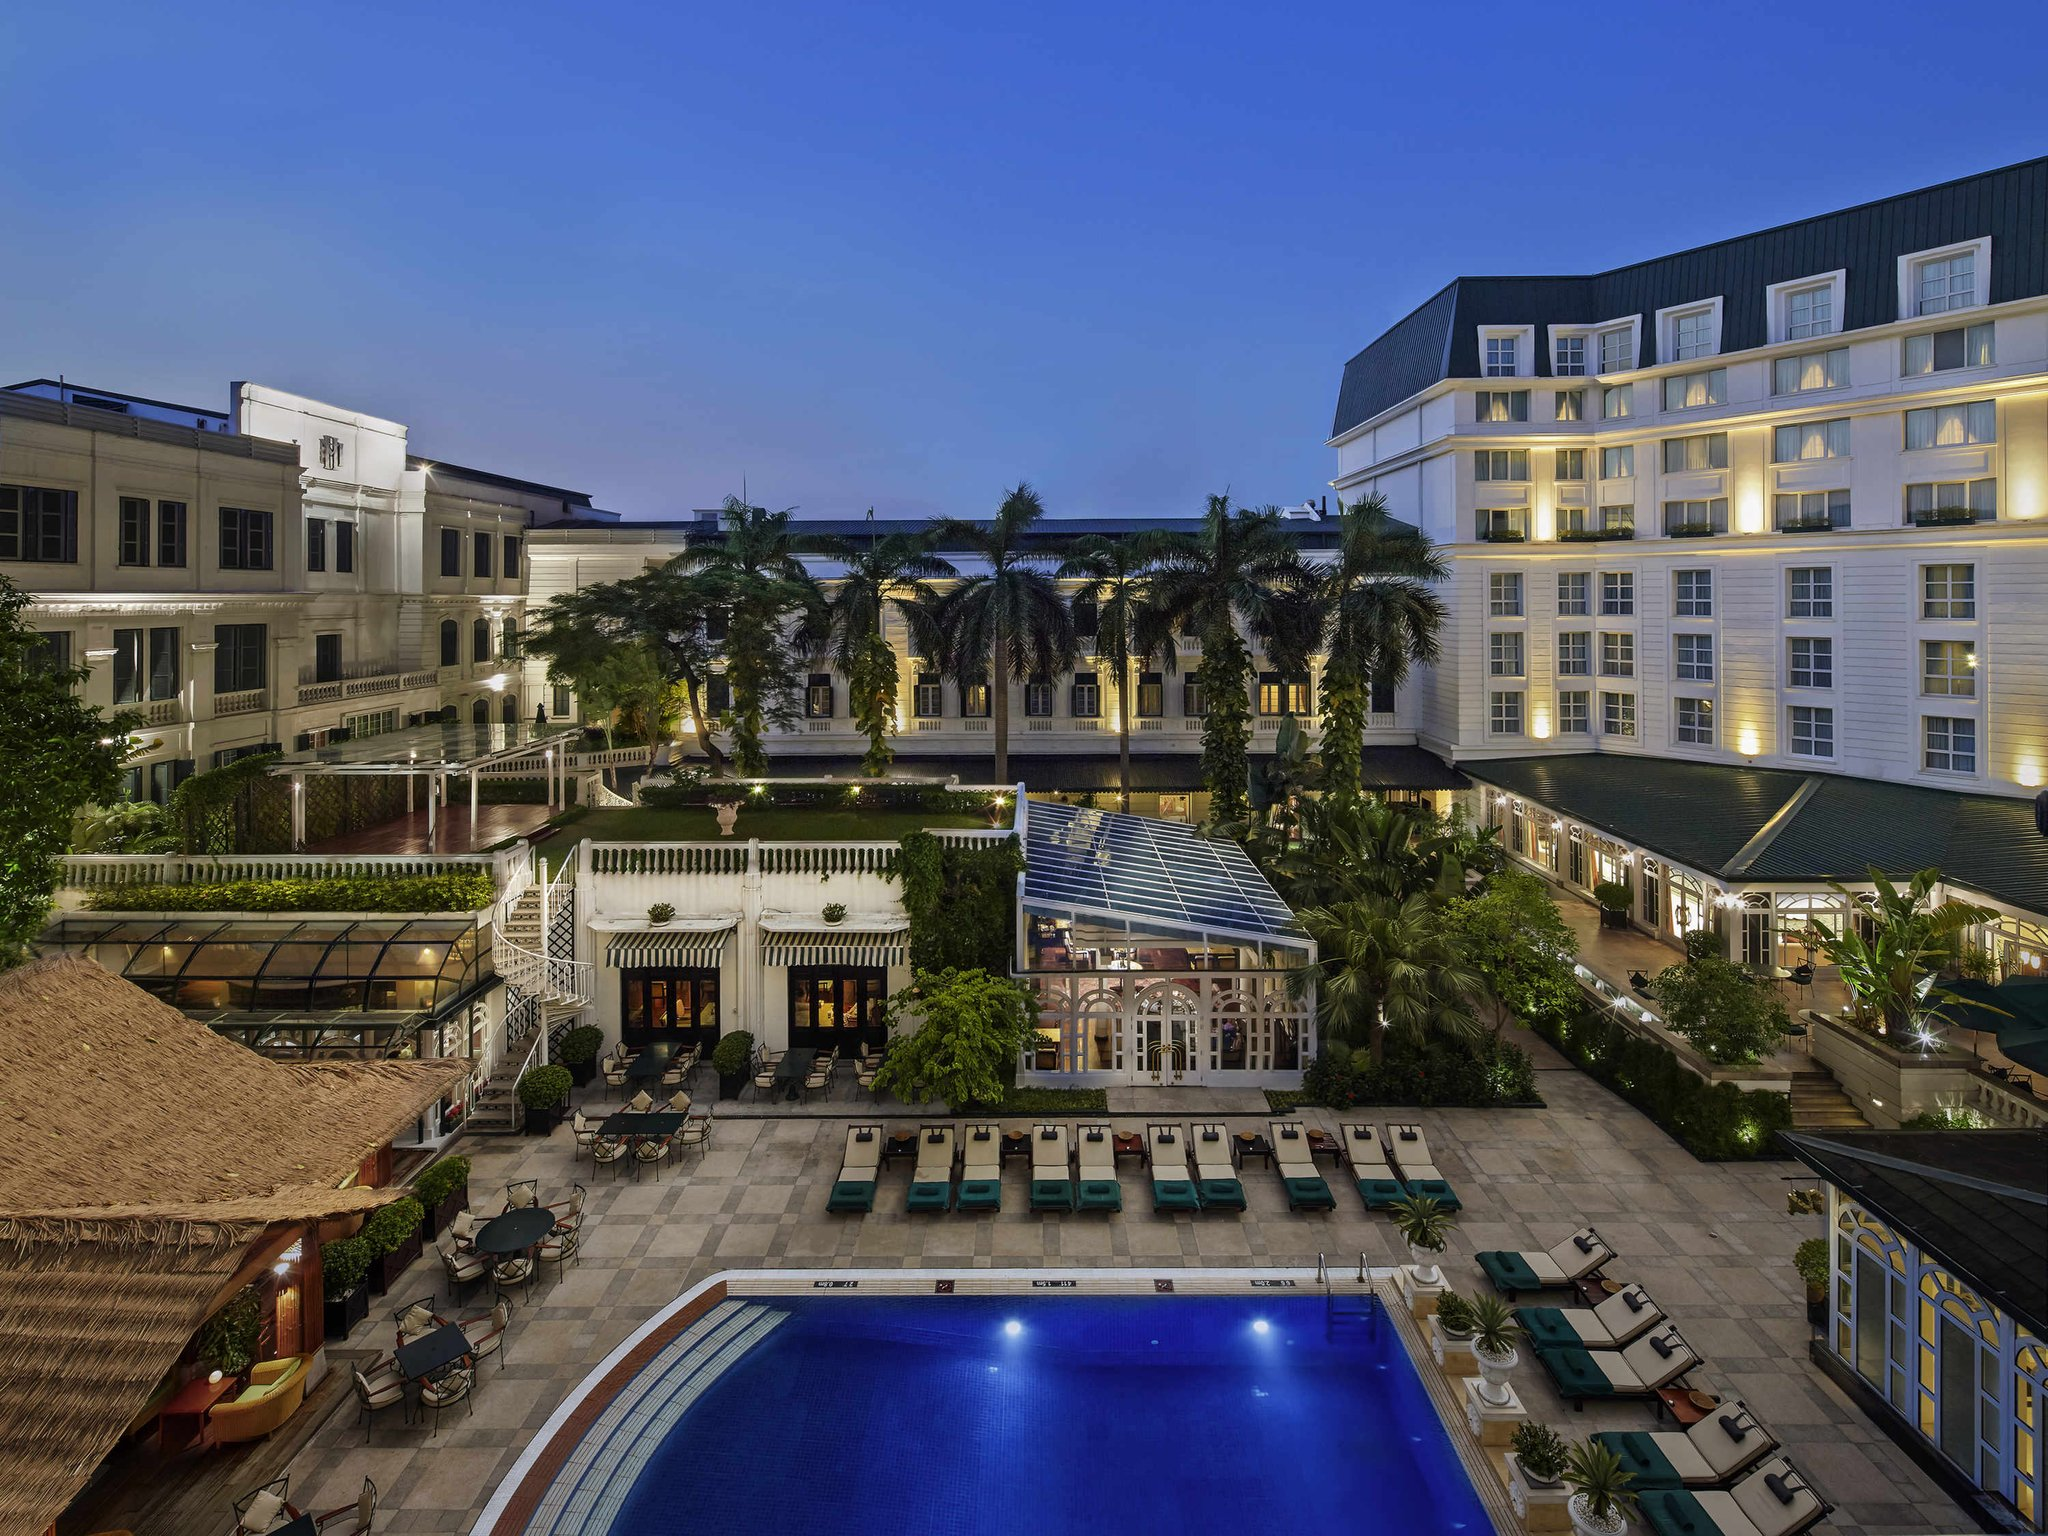 Swimming pool view of hotel Sofitel Legend Metropole, Hanoi Vietnam